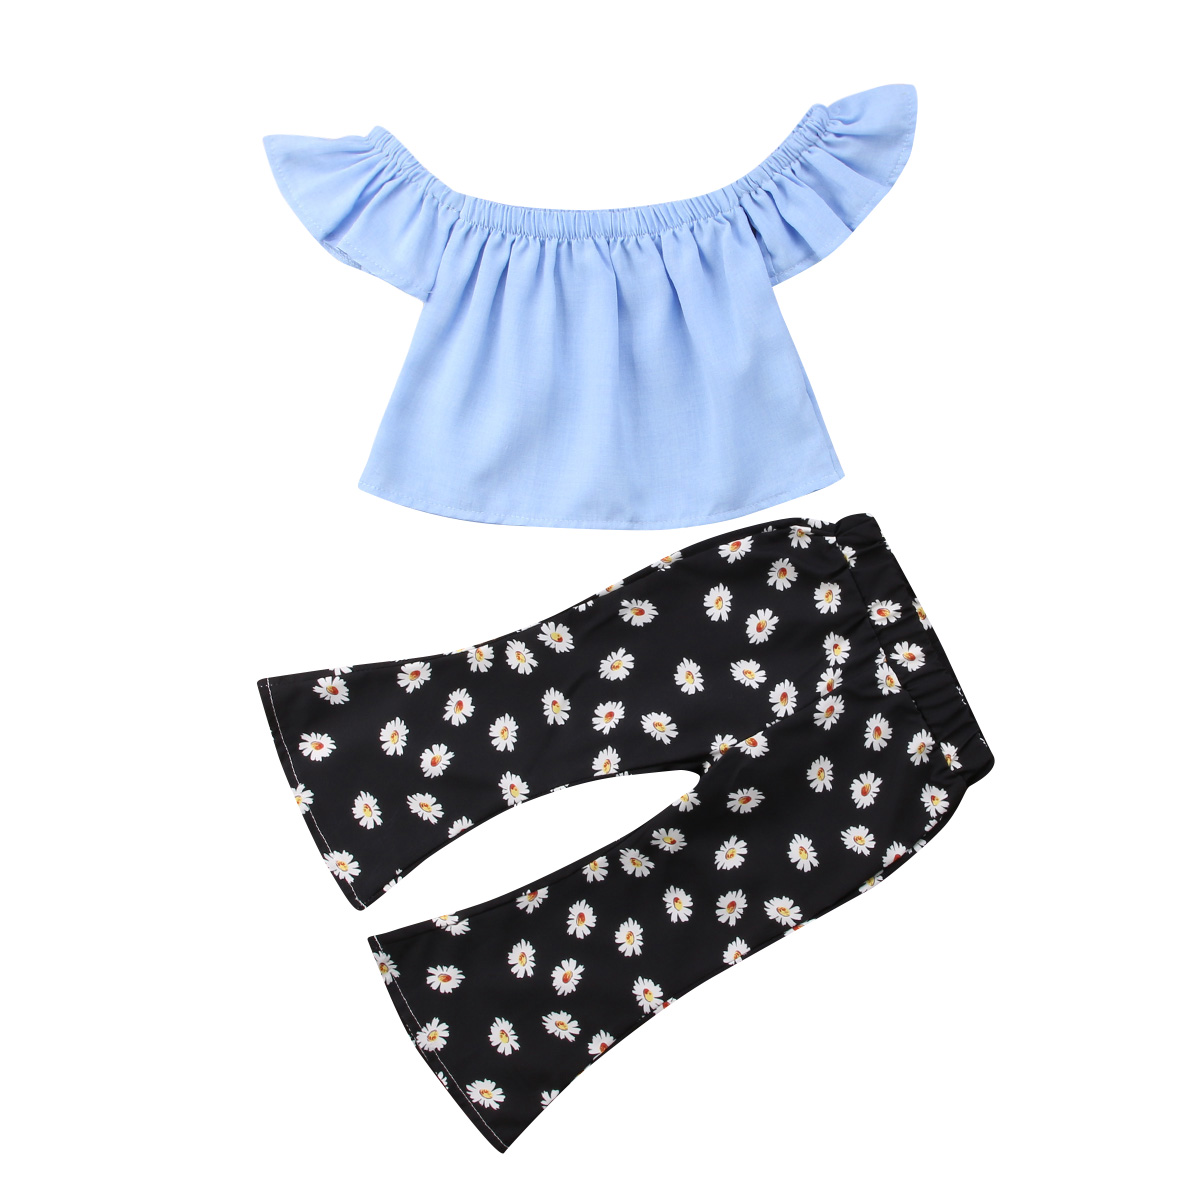 2018 New Summer 2pcs Kid Baby Girls Clothing Set Blue off shoulder Tops+ Flare Pants Flower Girls Clothing